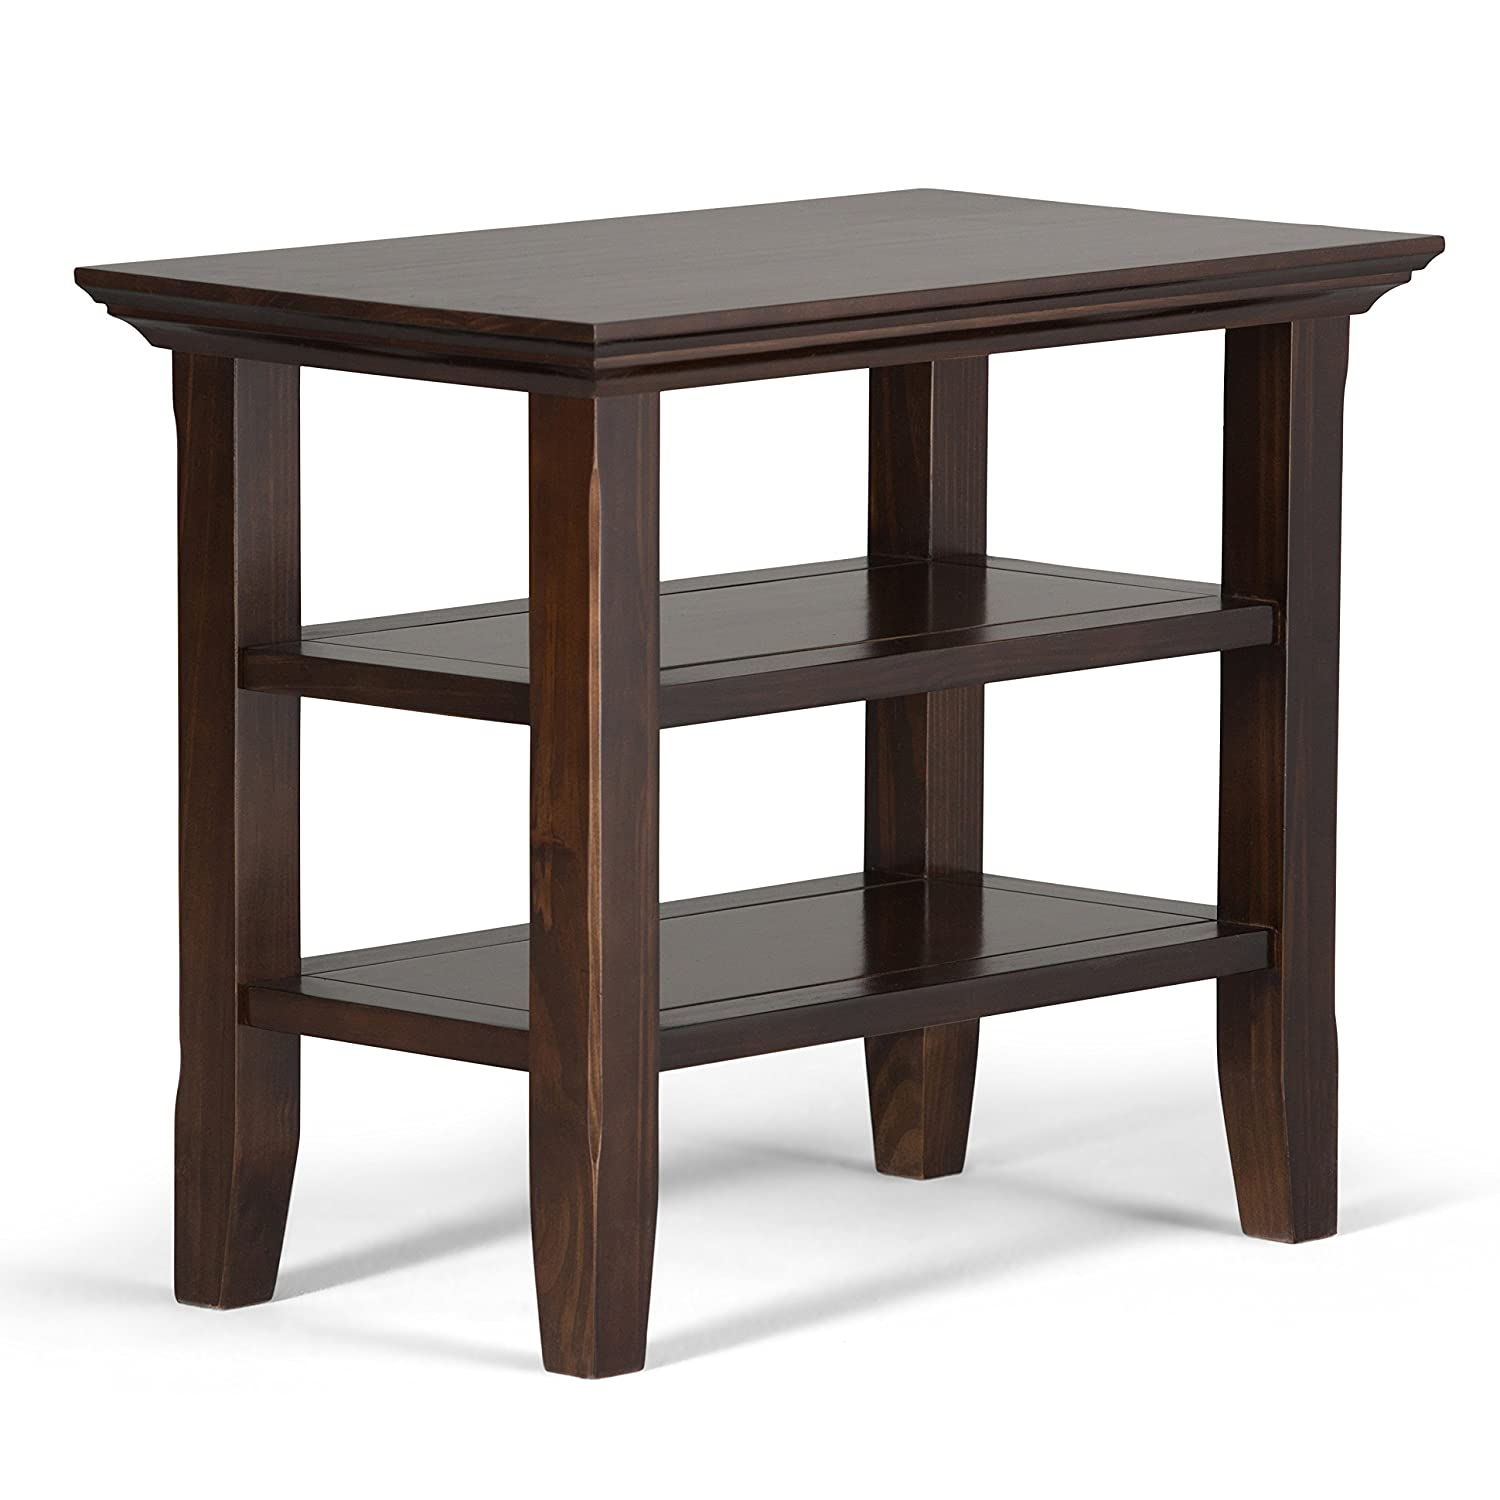 Amazon com simpli home axwell3 008 acadian solid wood 14 inch wide rustic narrow side table in tobacco brown kitchen dining